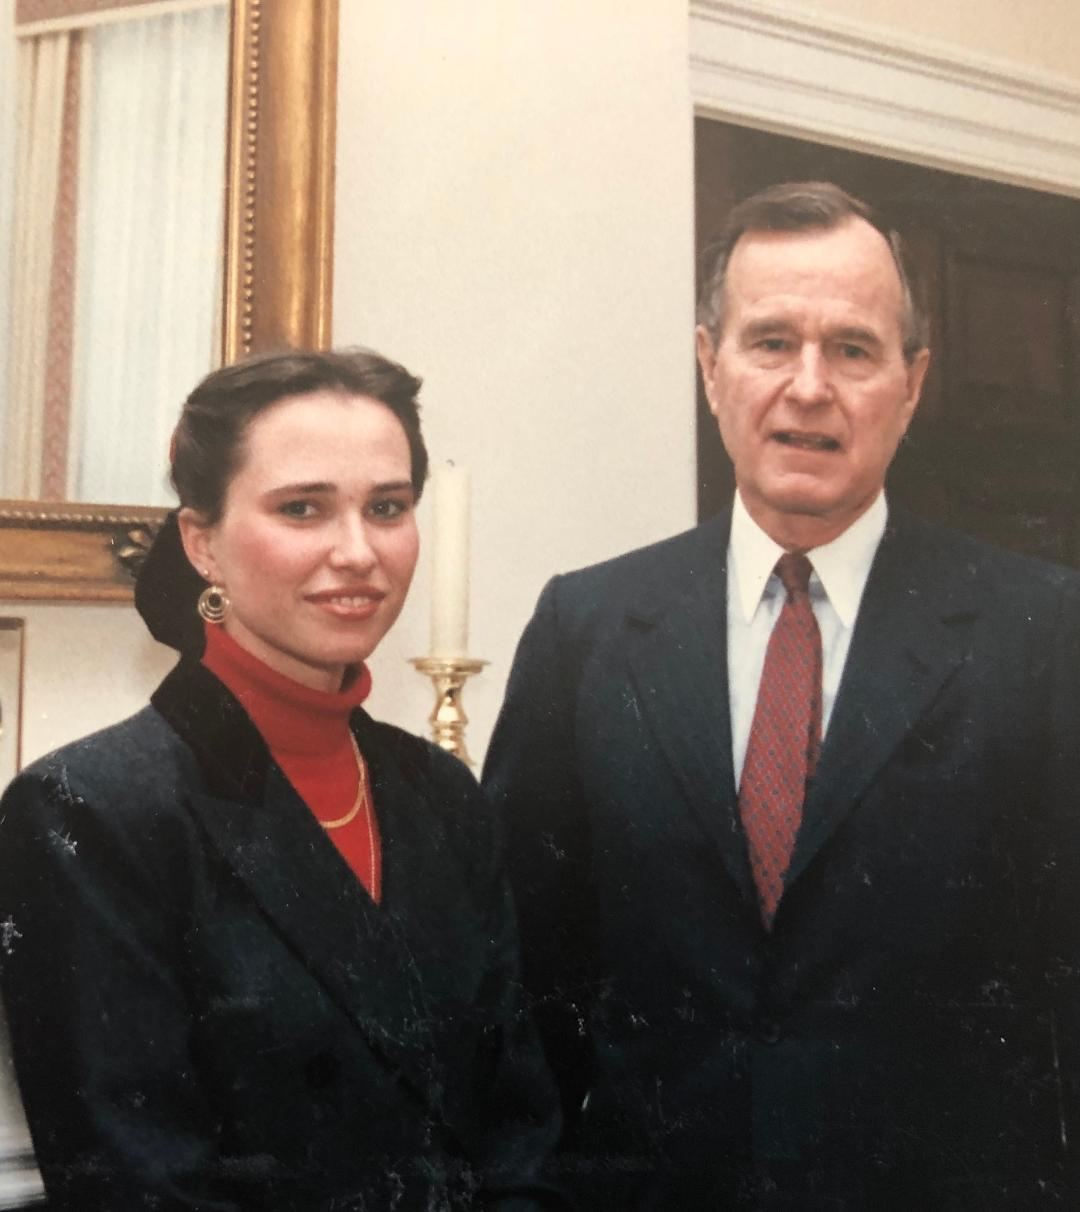 Myriam Wead, wife of Doug Wead, historian, with President H.W. Bush